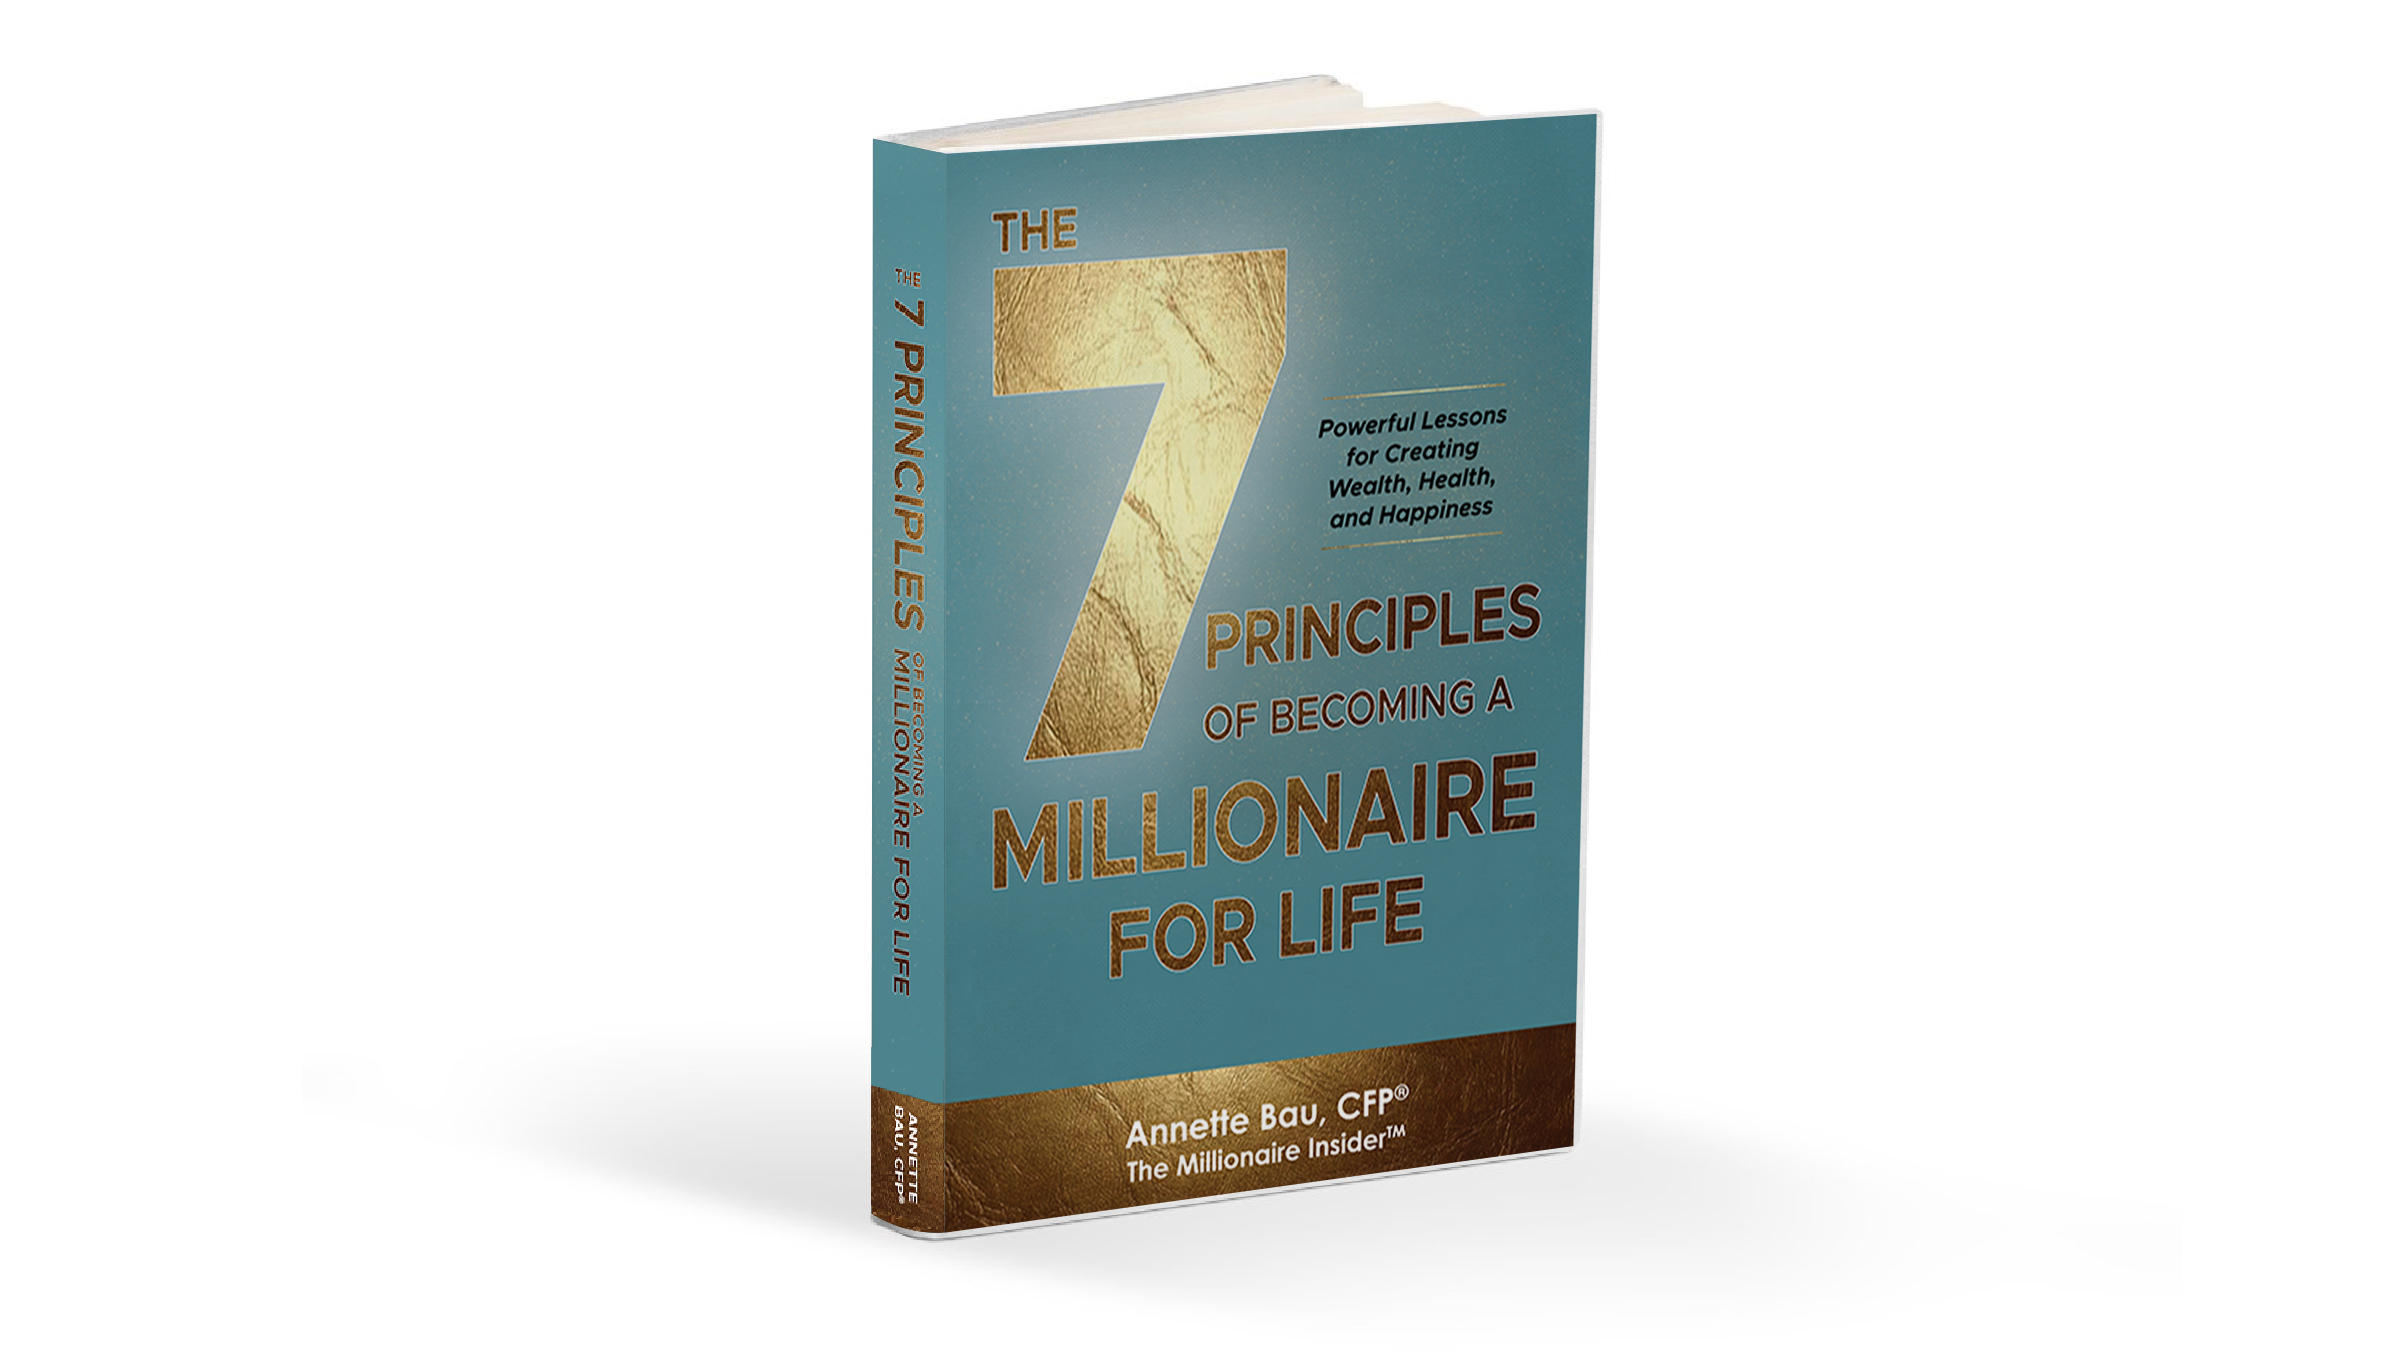 The 7 Principles of Becoming a Millionaire for Life